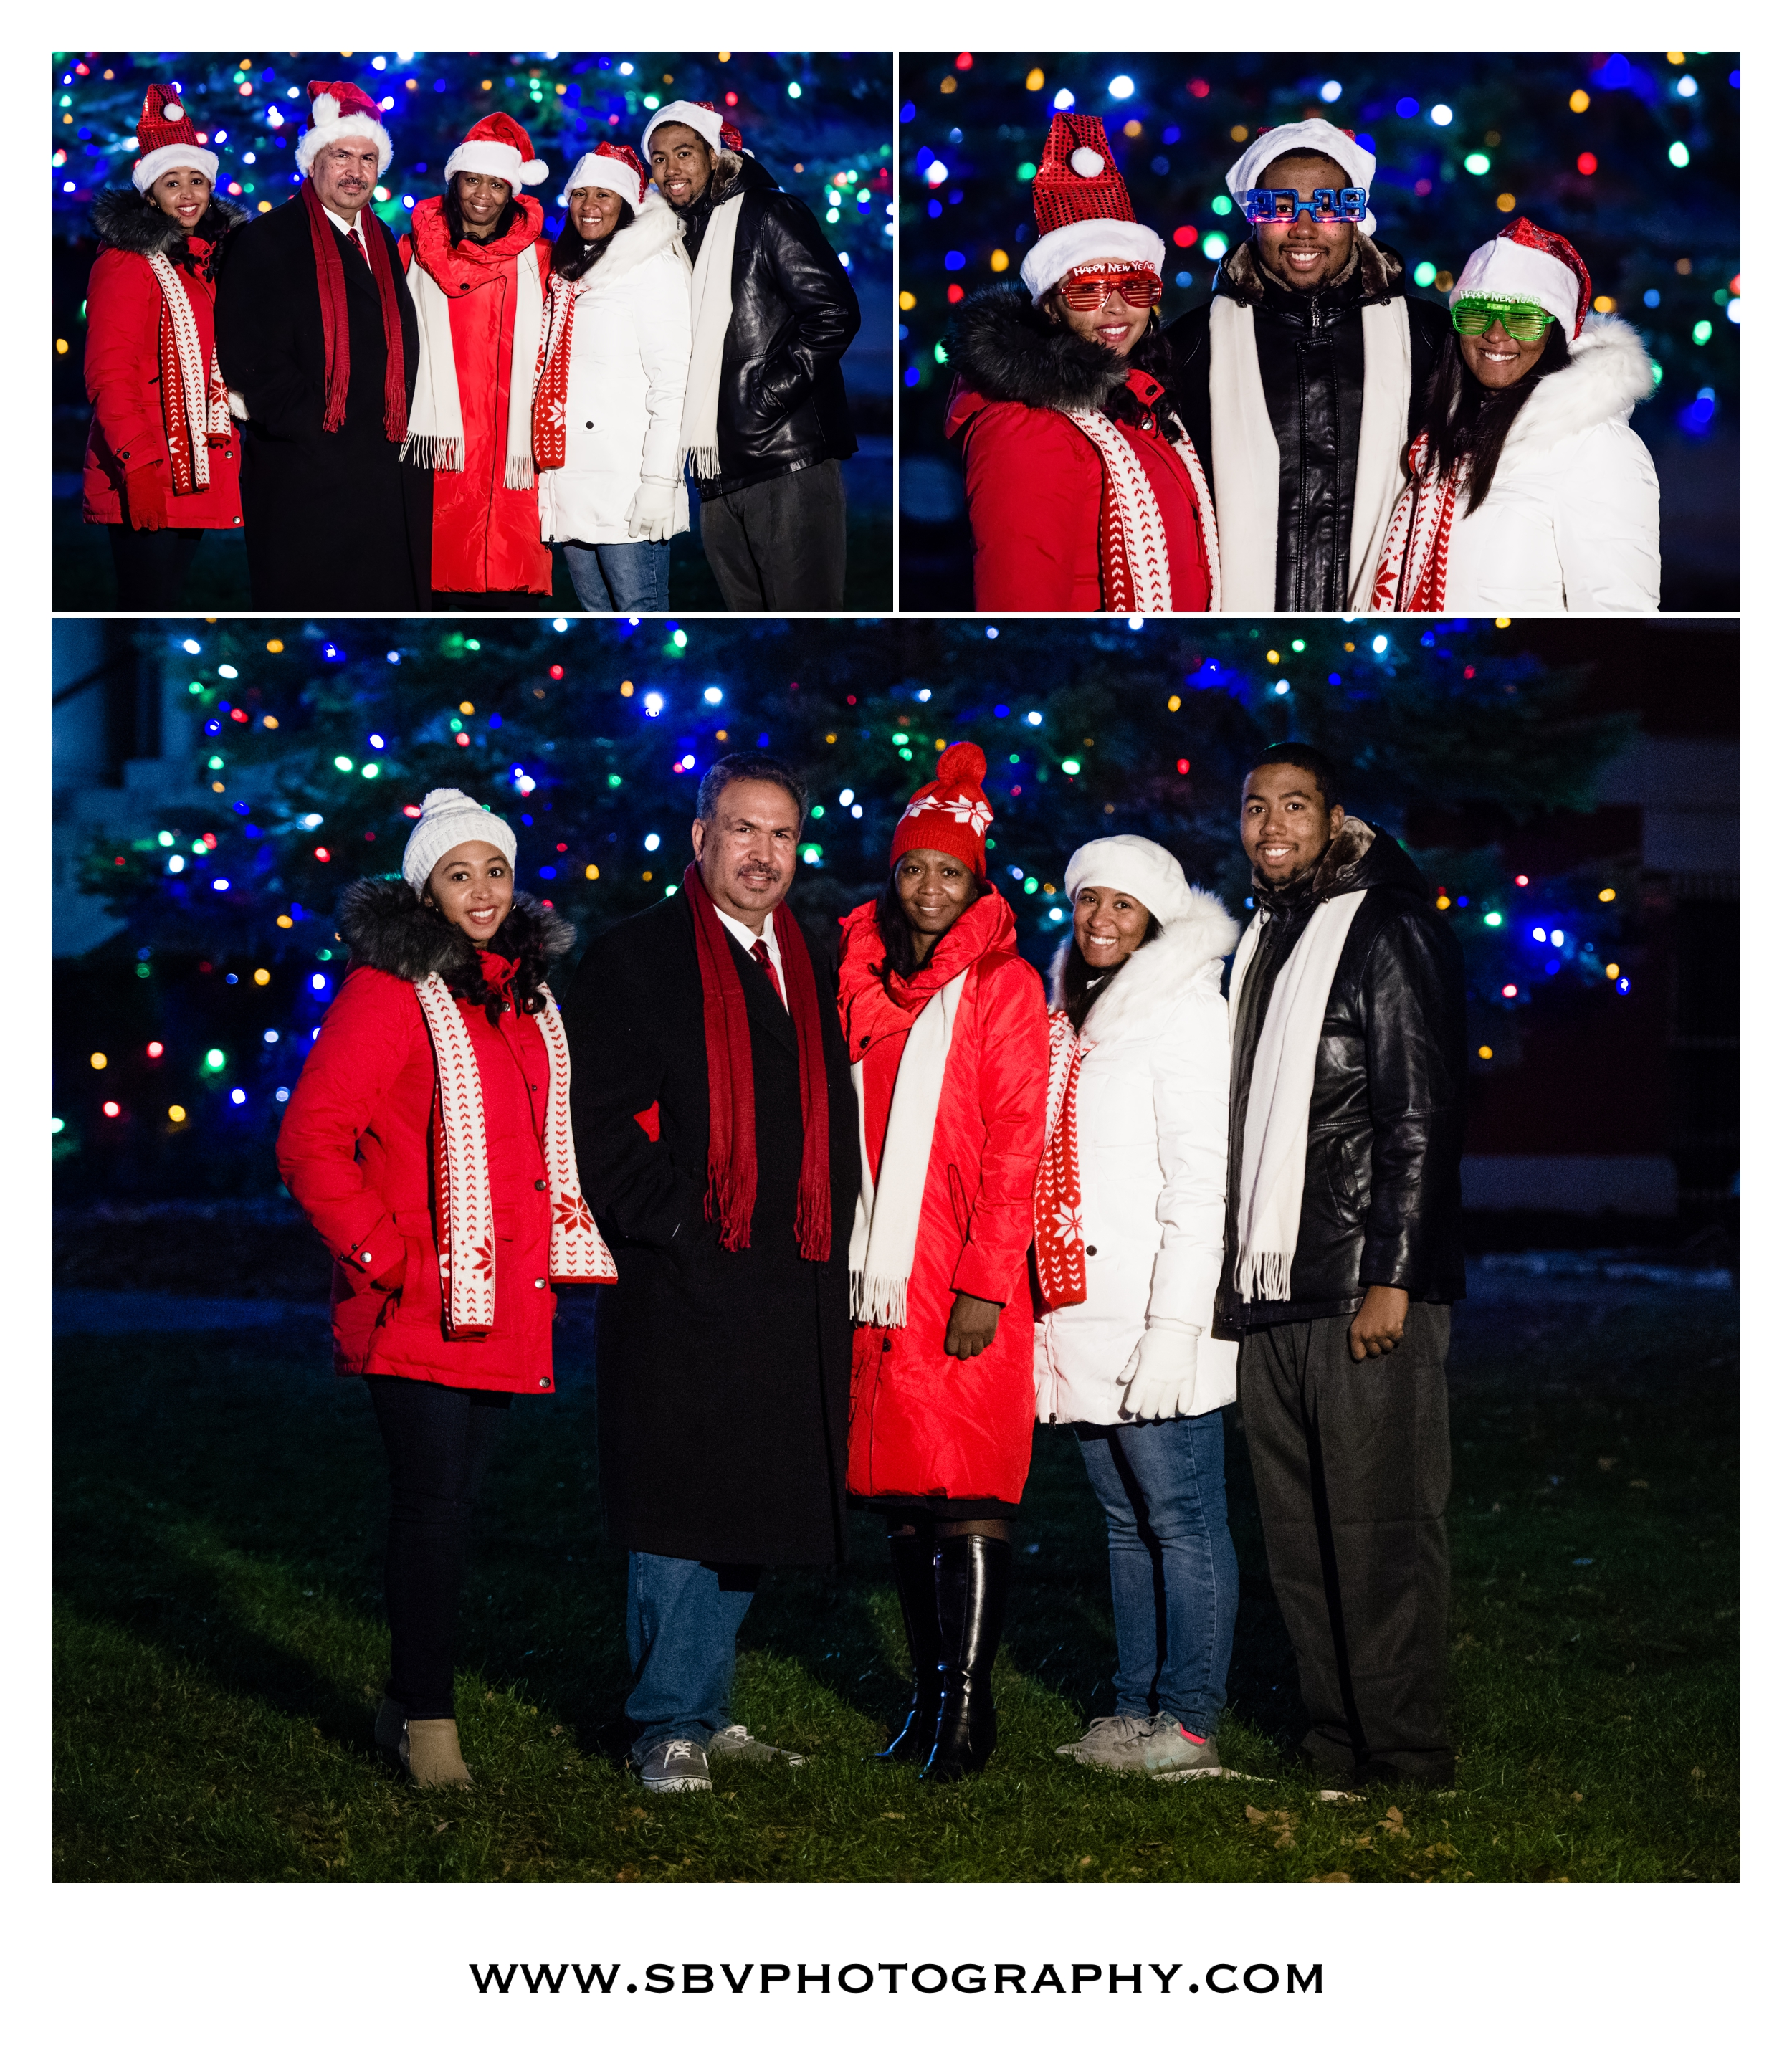 Outdoor family portraits in front of the Christmas tree.